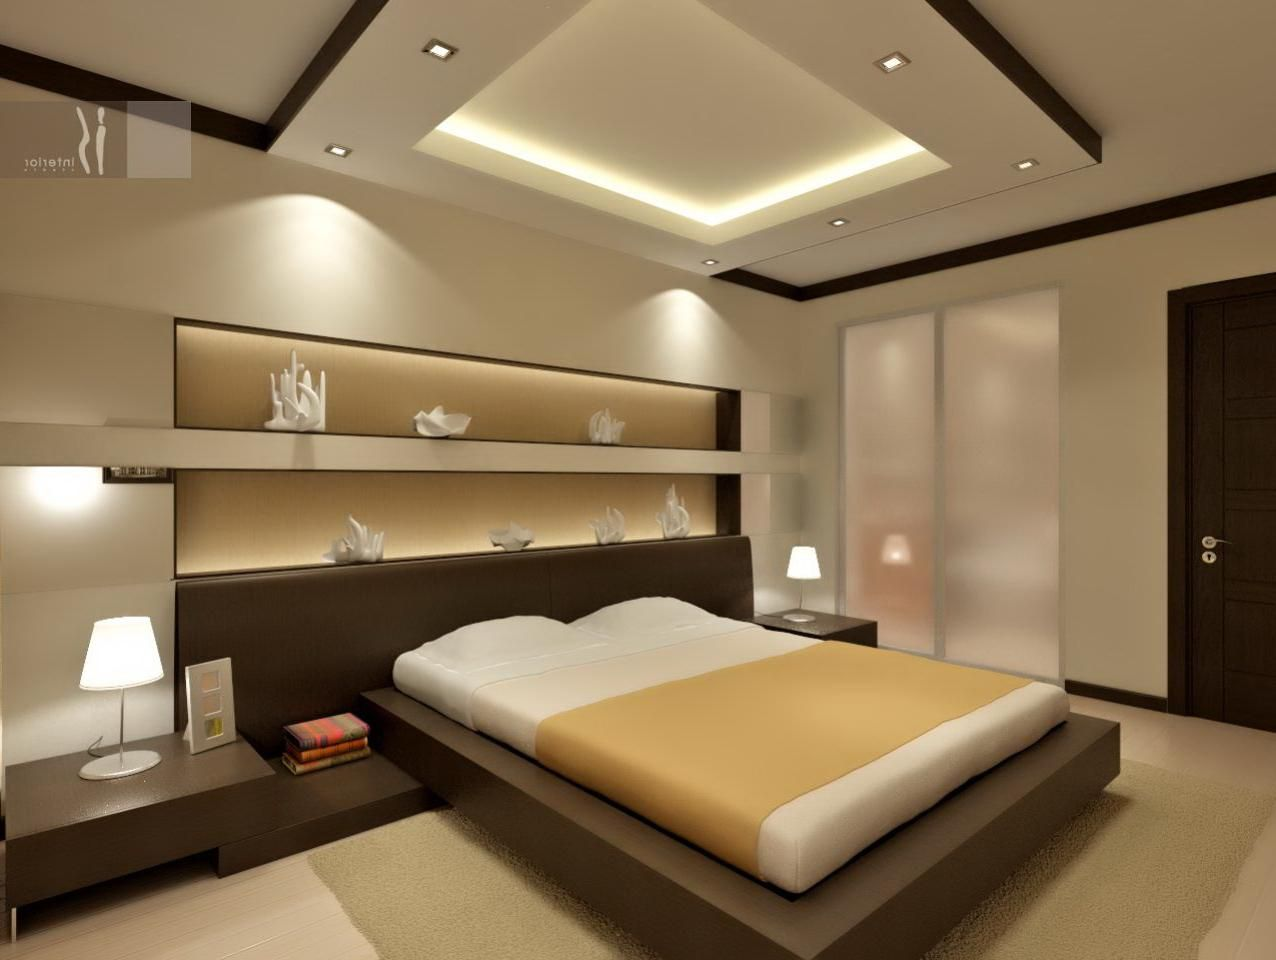 Simply Minimalist Bedroom For Men With Less Furniture And Modern Lighting Fixtures Decorating Bedrooms for Men In Smart and Simple Ways Bedroom design & Simply Minimalist Bedroom For Men With Less Furniture And Modern ...